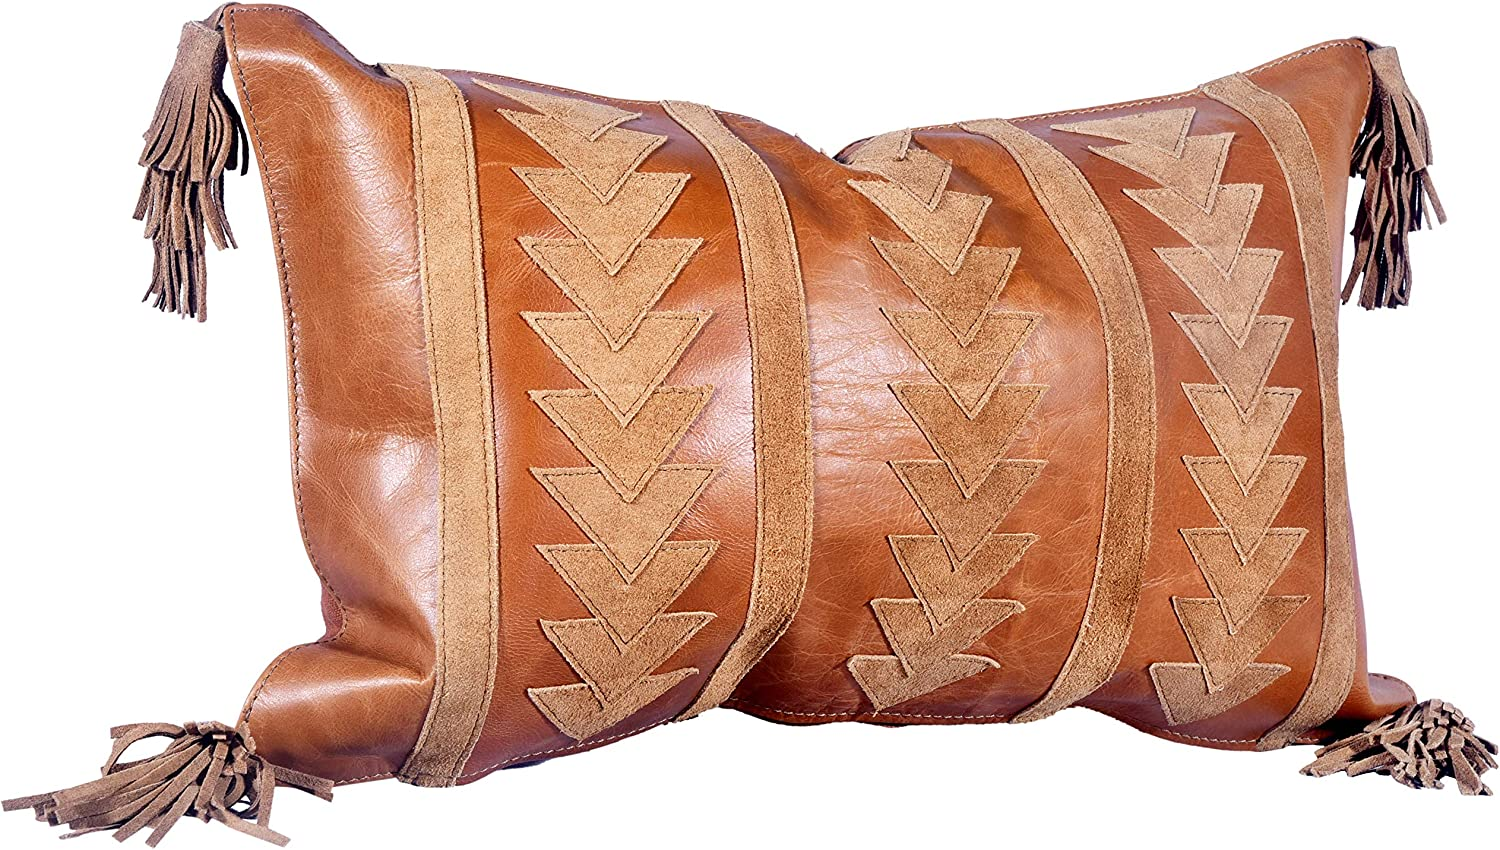 Overseas parallel import Industry No. 1 regular item Arrow Design Leather Pillow 20x12 with Tassels